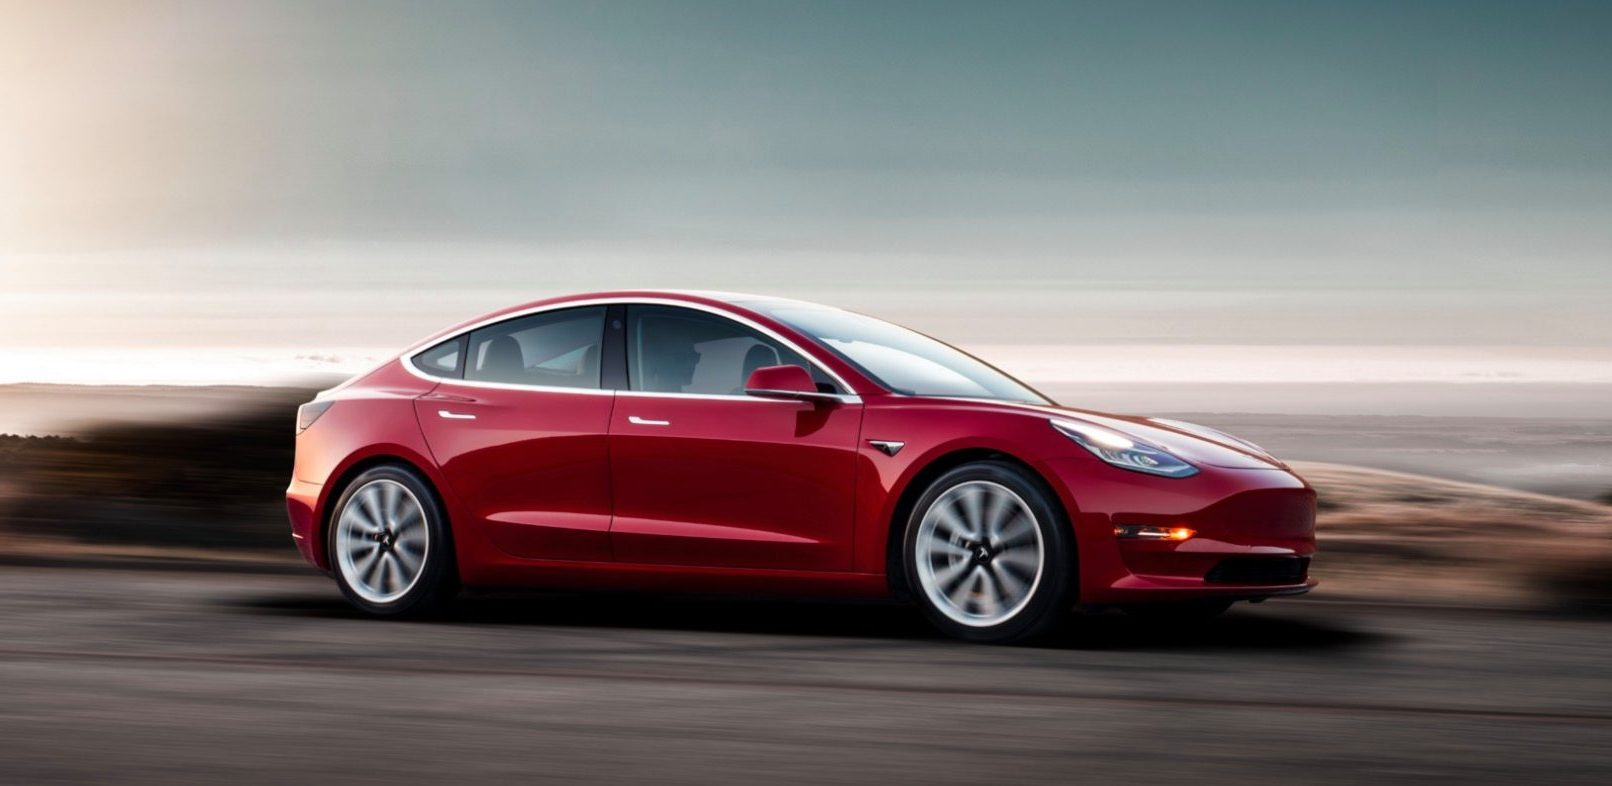 Tesla model 3 stock image